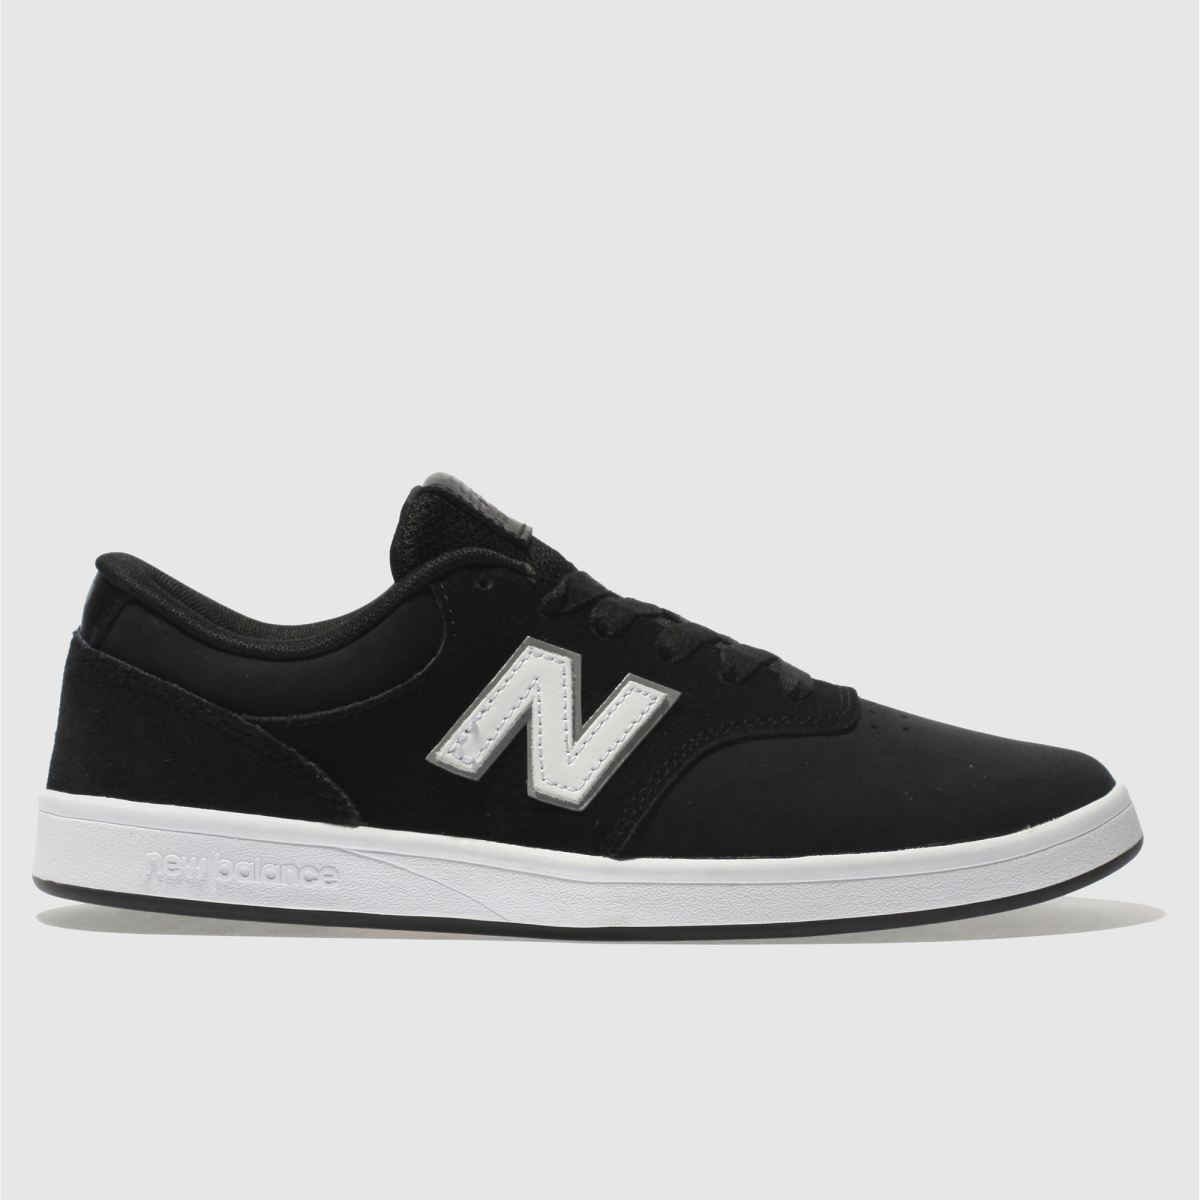 New Balance Black & White All Coasts 424 Trainers